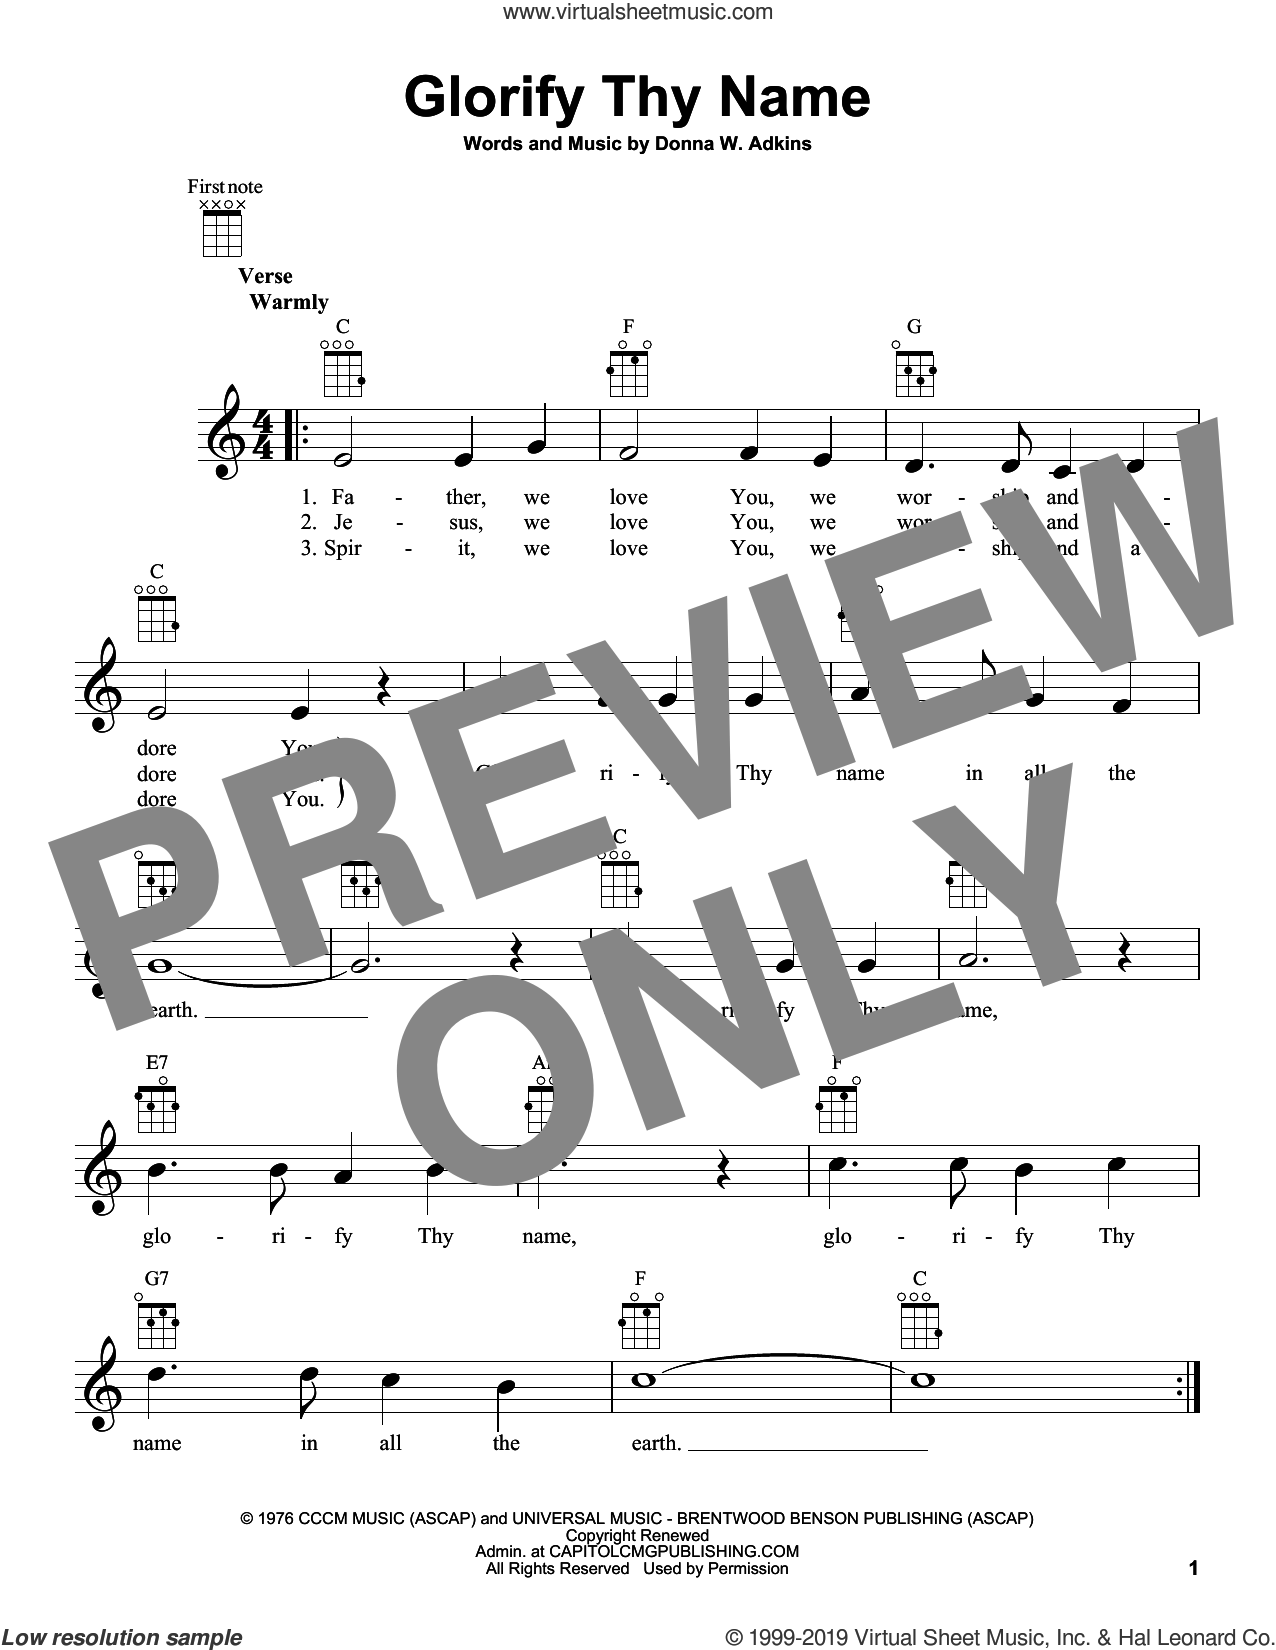 Glorify Thy Name sheet music for ukulele by Donna Adkins, intermediate skill level